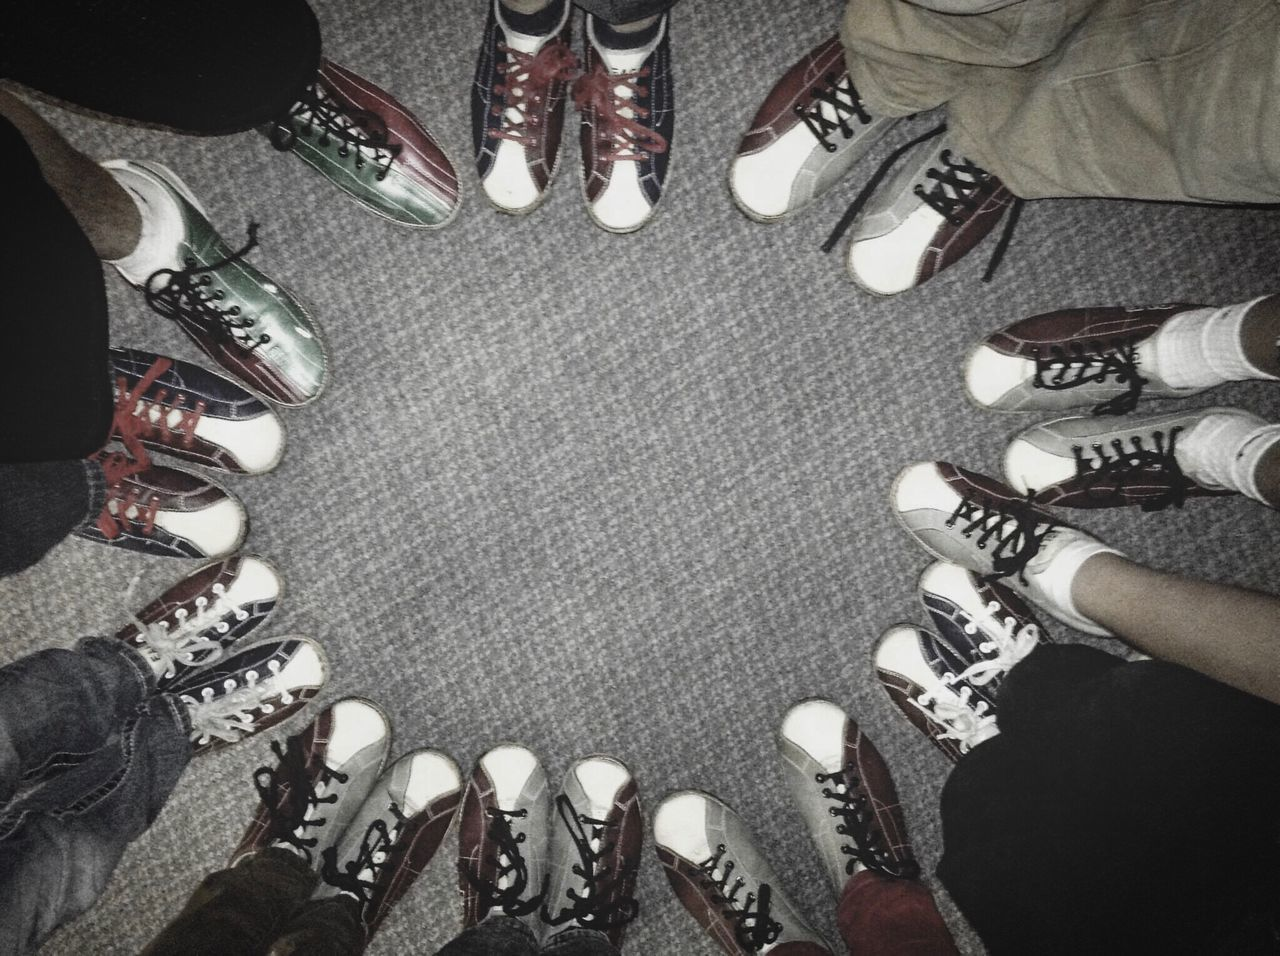 Birthday bowlerama Shoe Real People Human Body Part EyeEmNewHere Low Section High Angle View Lifestyles Indoors  Human Leg People Sport Dirty Shoes Retro Styled Fun Bowling Bowling Alley Shoes Indoors  Retro Simple Games